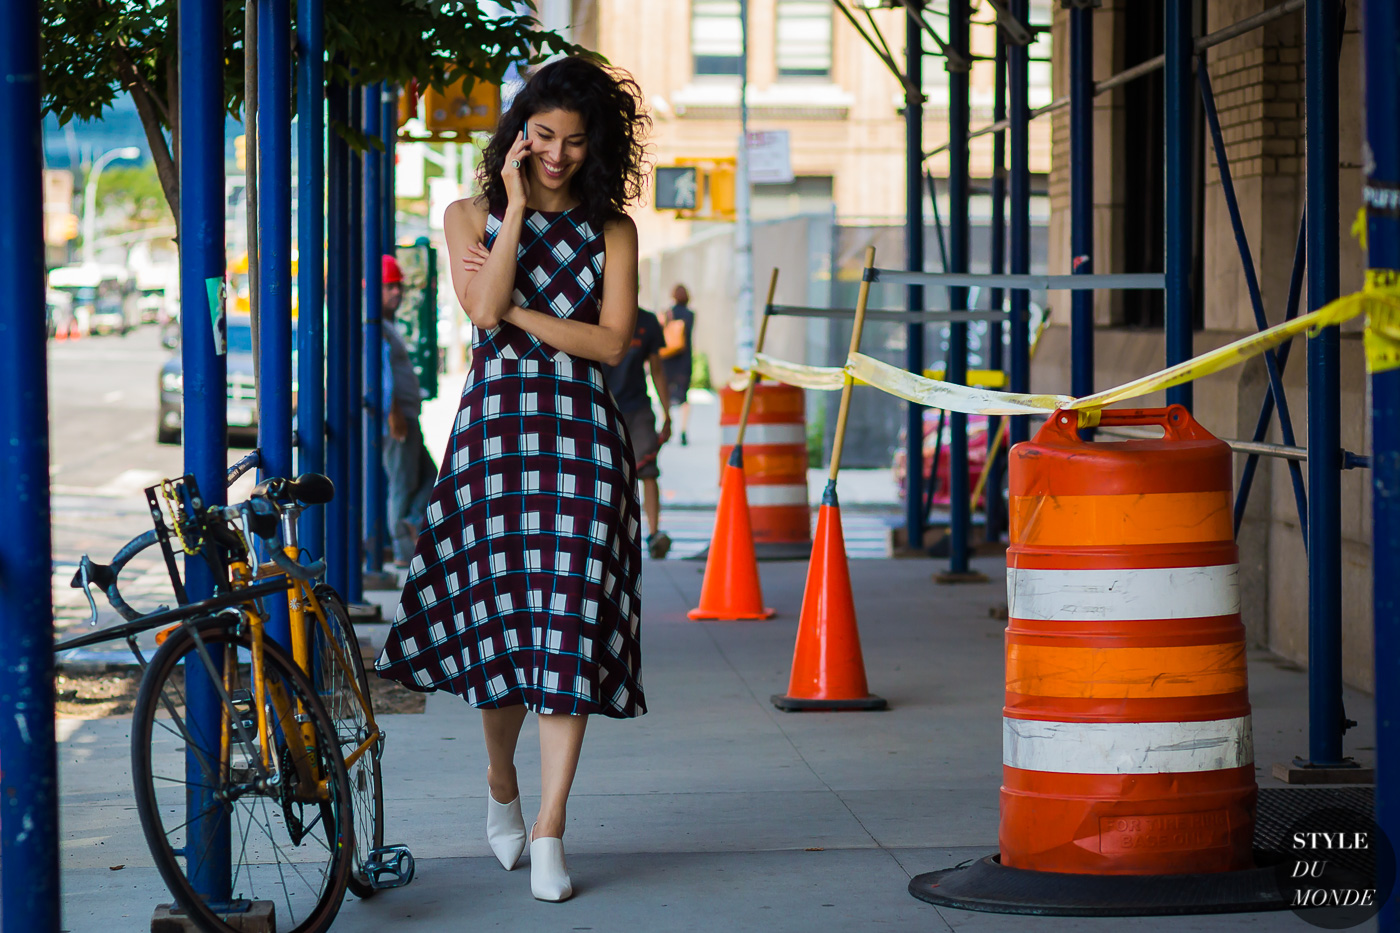 Caroline Issa by STYLEDUMONDE Street Style Fashion Photography